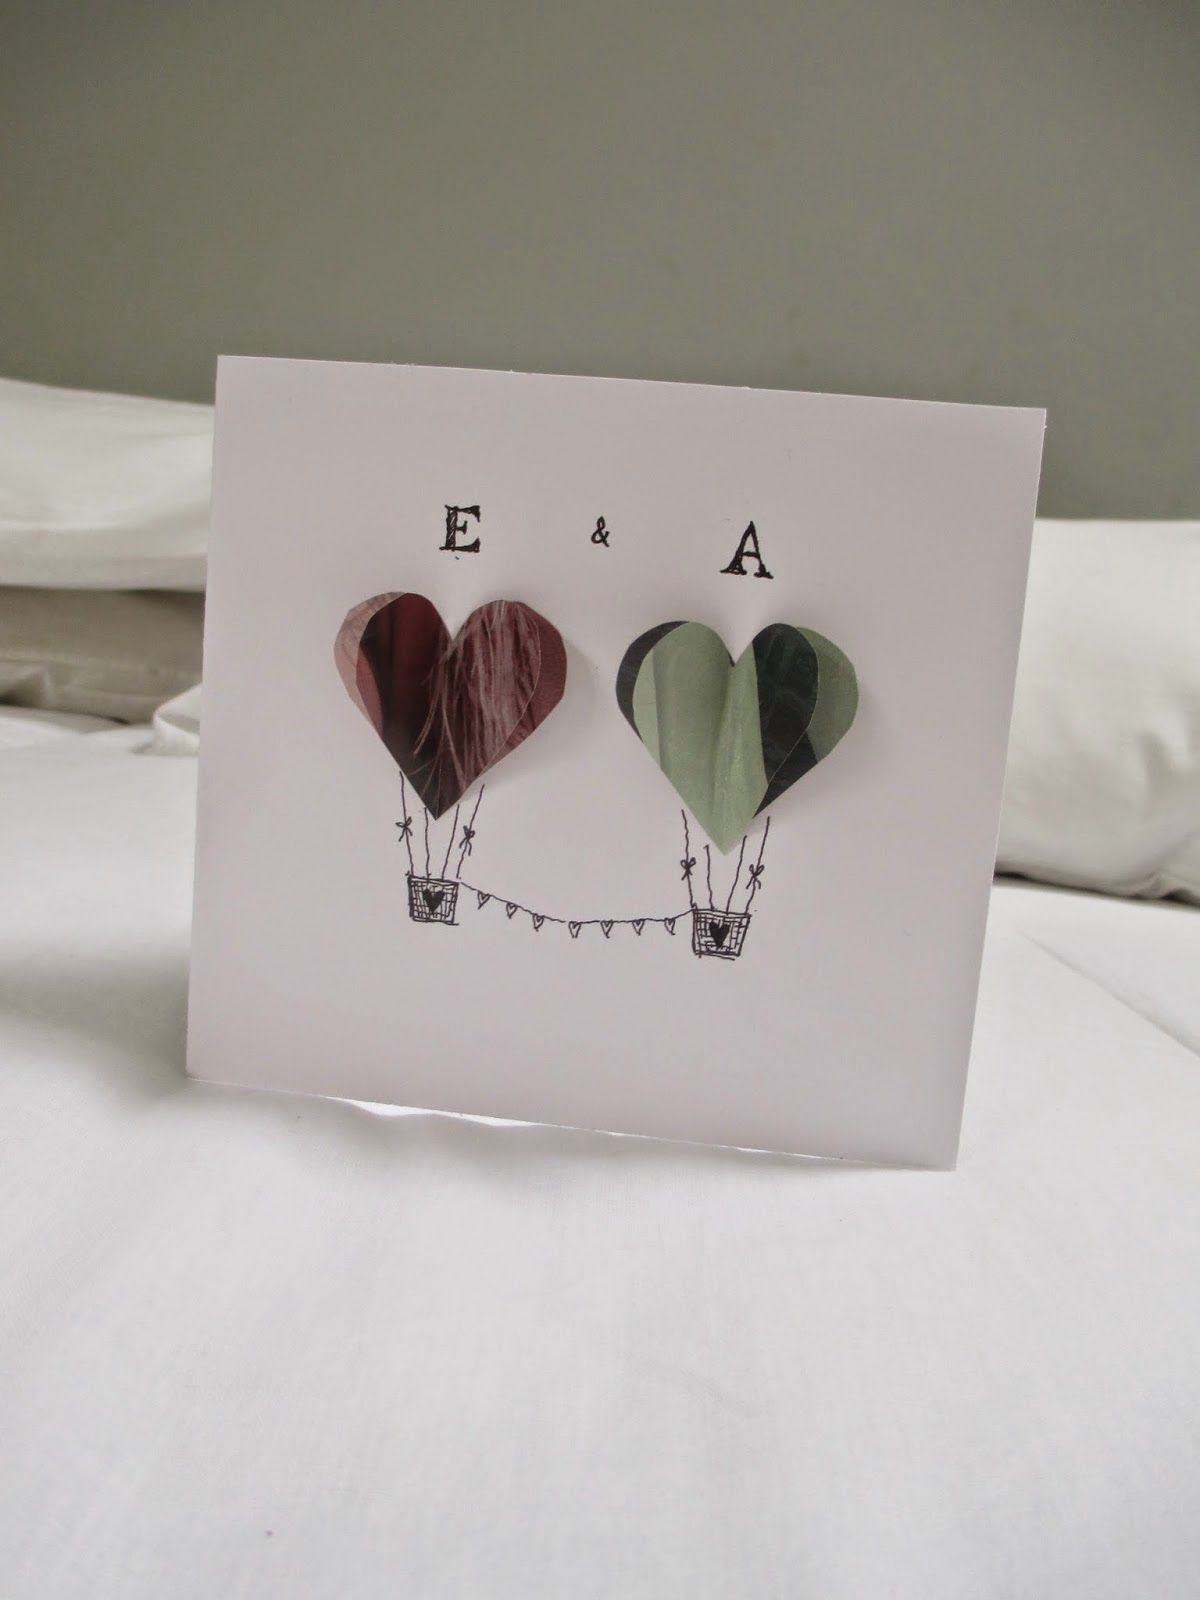 10 New Ideas Anniversary Card Diy Anniversary Cards Handmade Anniversary Card For Parents Anniversary Gifts For Parents